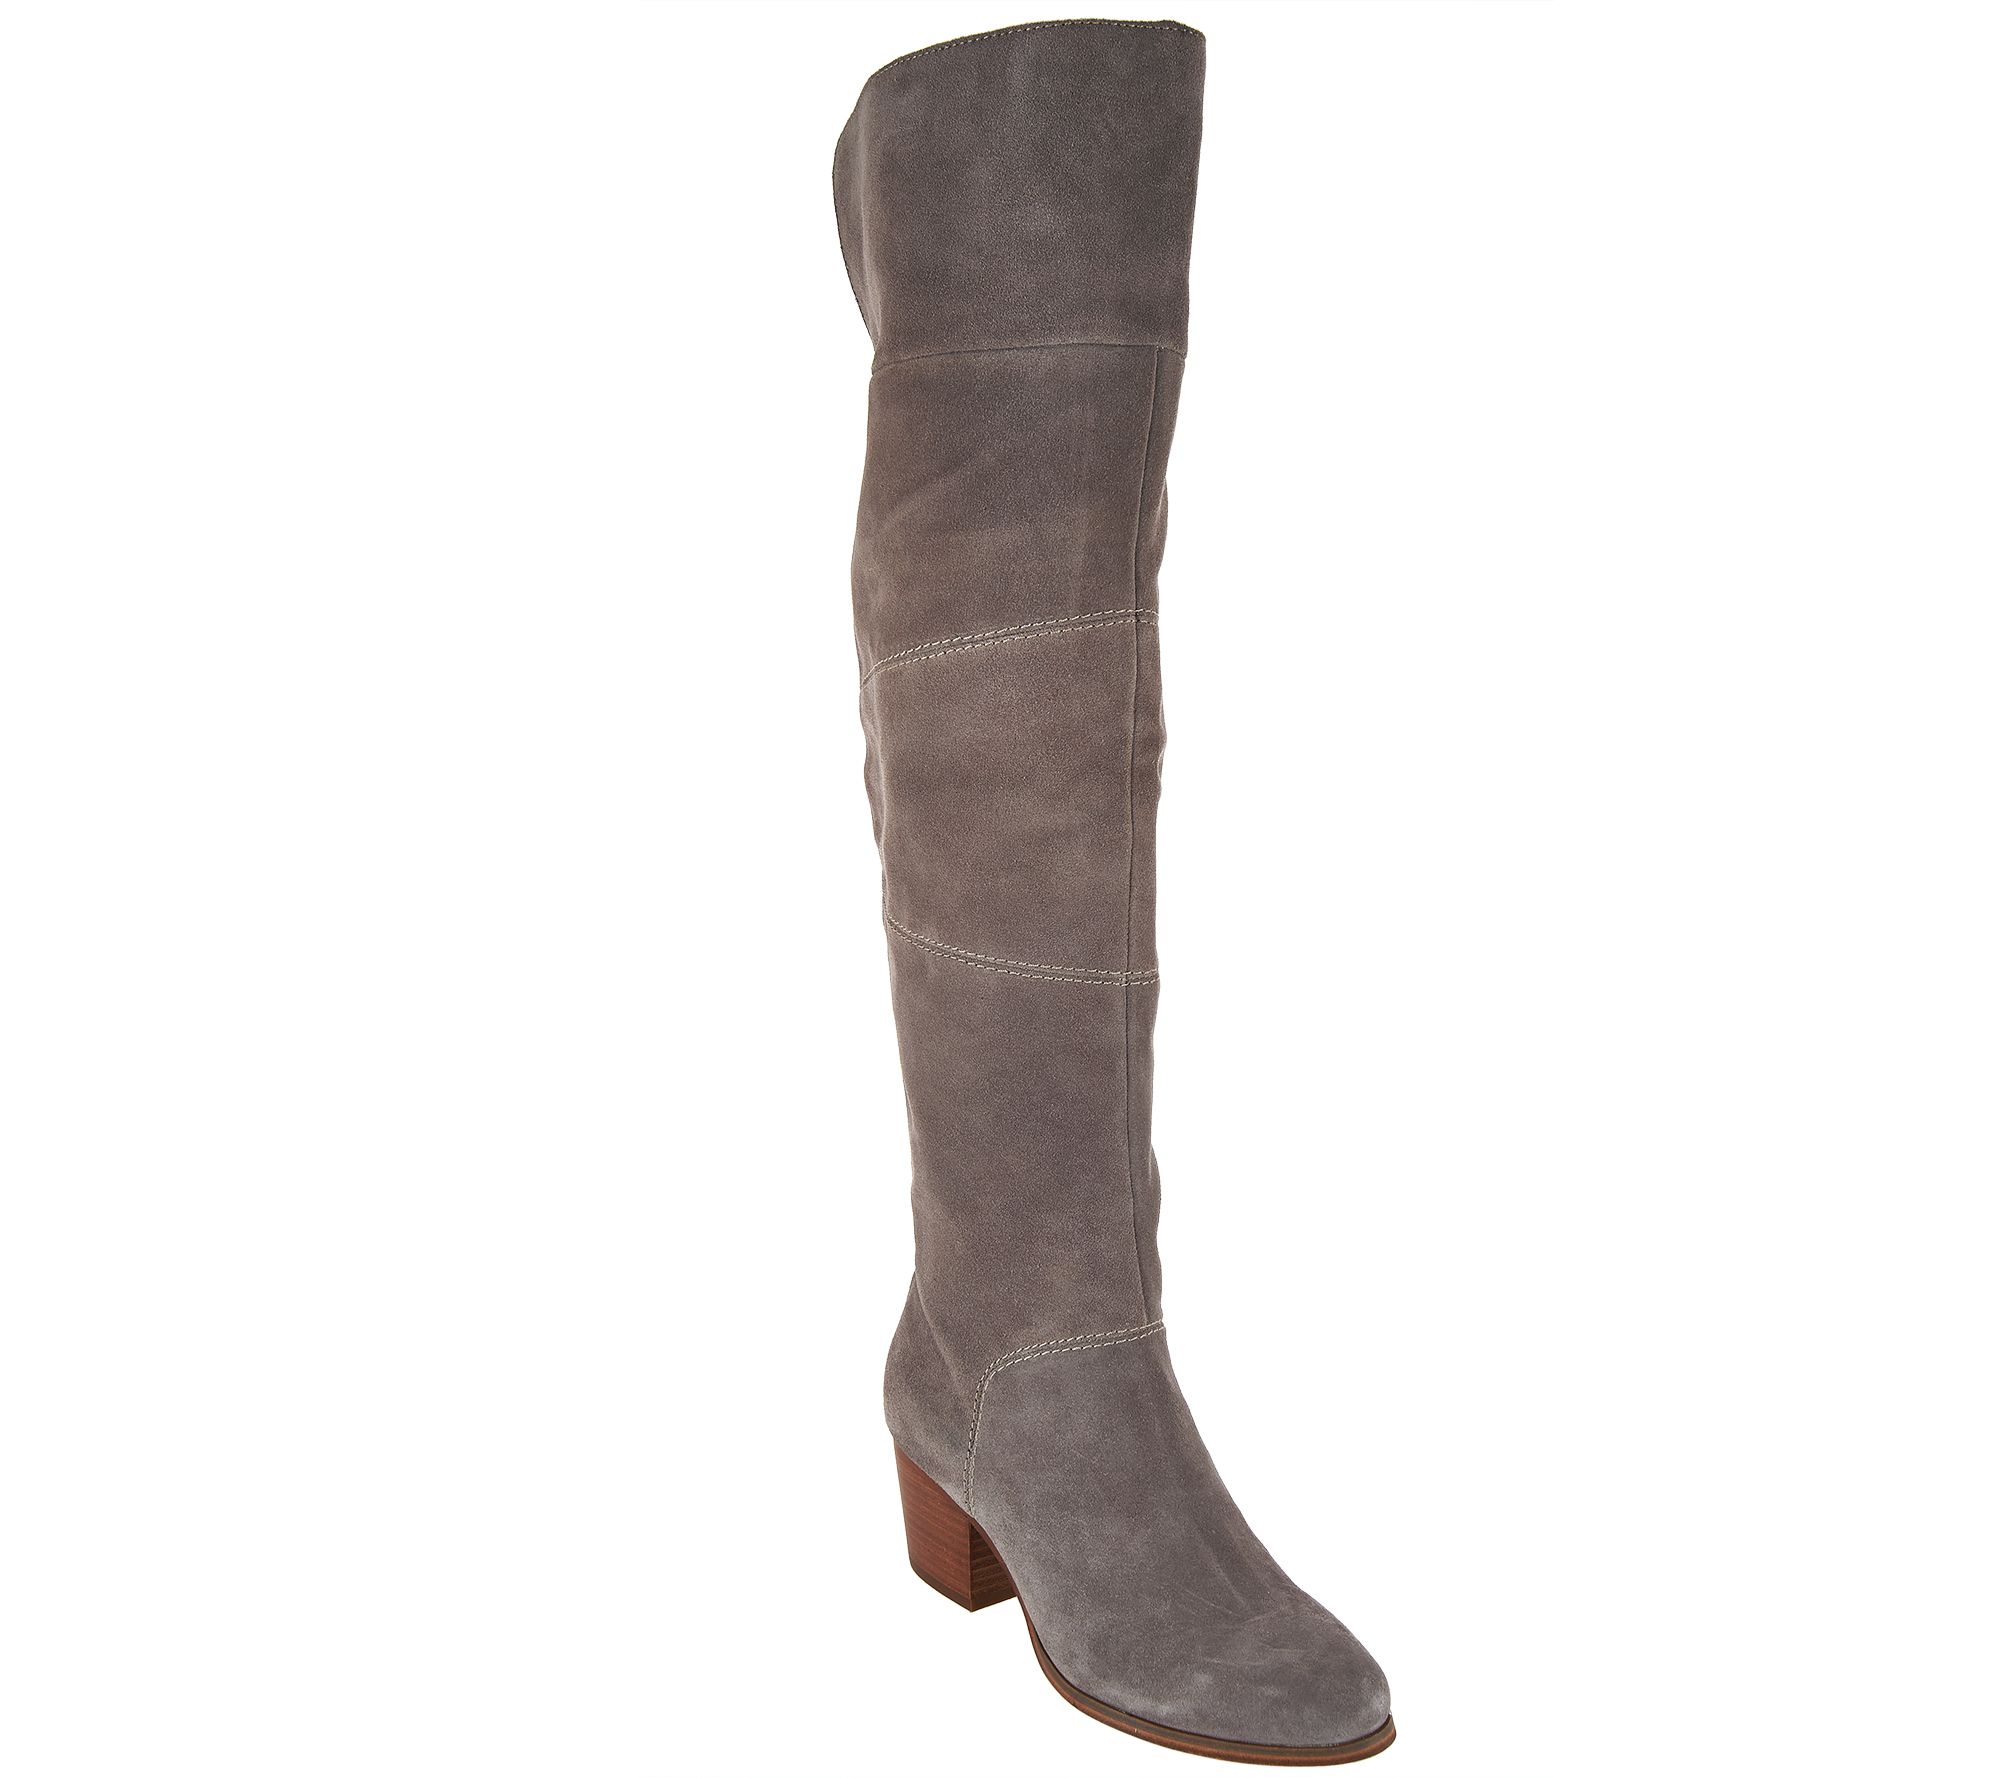 ec54a77e66f Sole Society Suede Over the Knee Boots - Melbourne - Page 1 — QVC.com